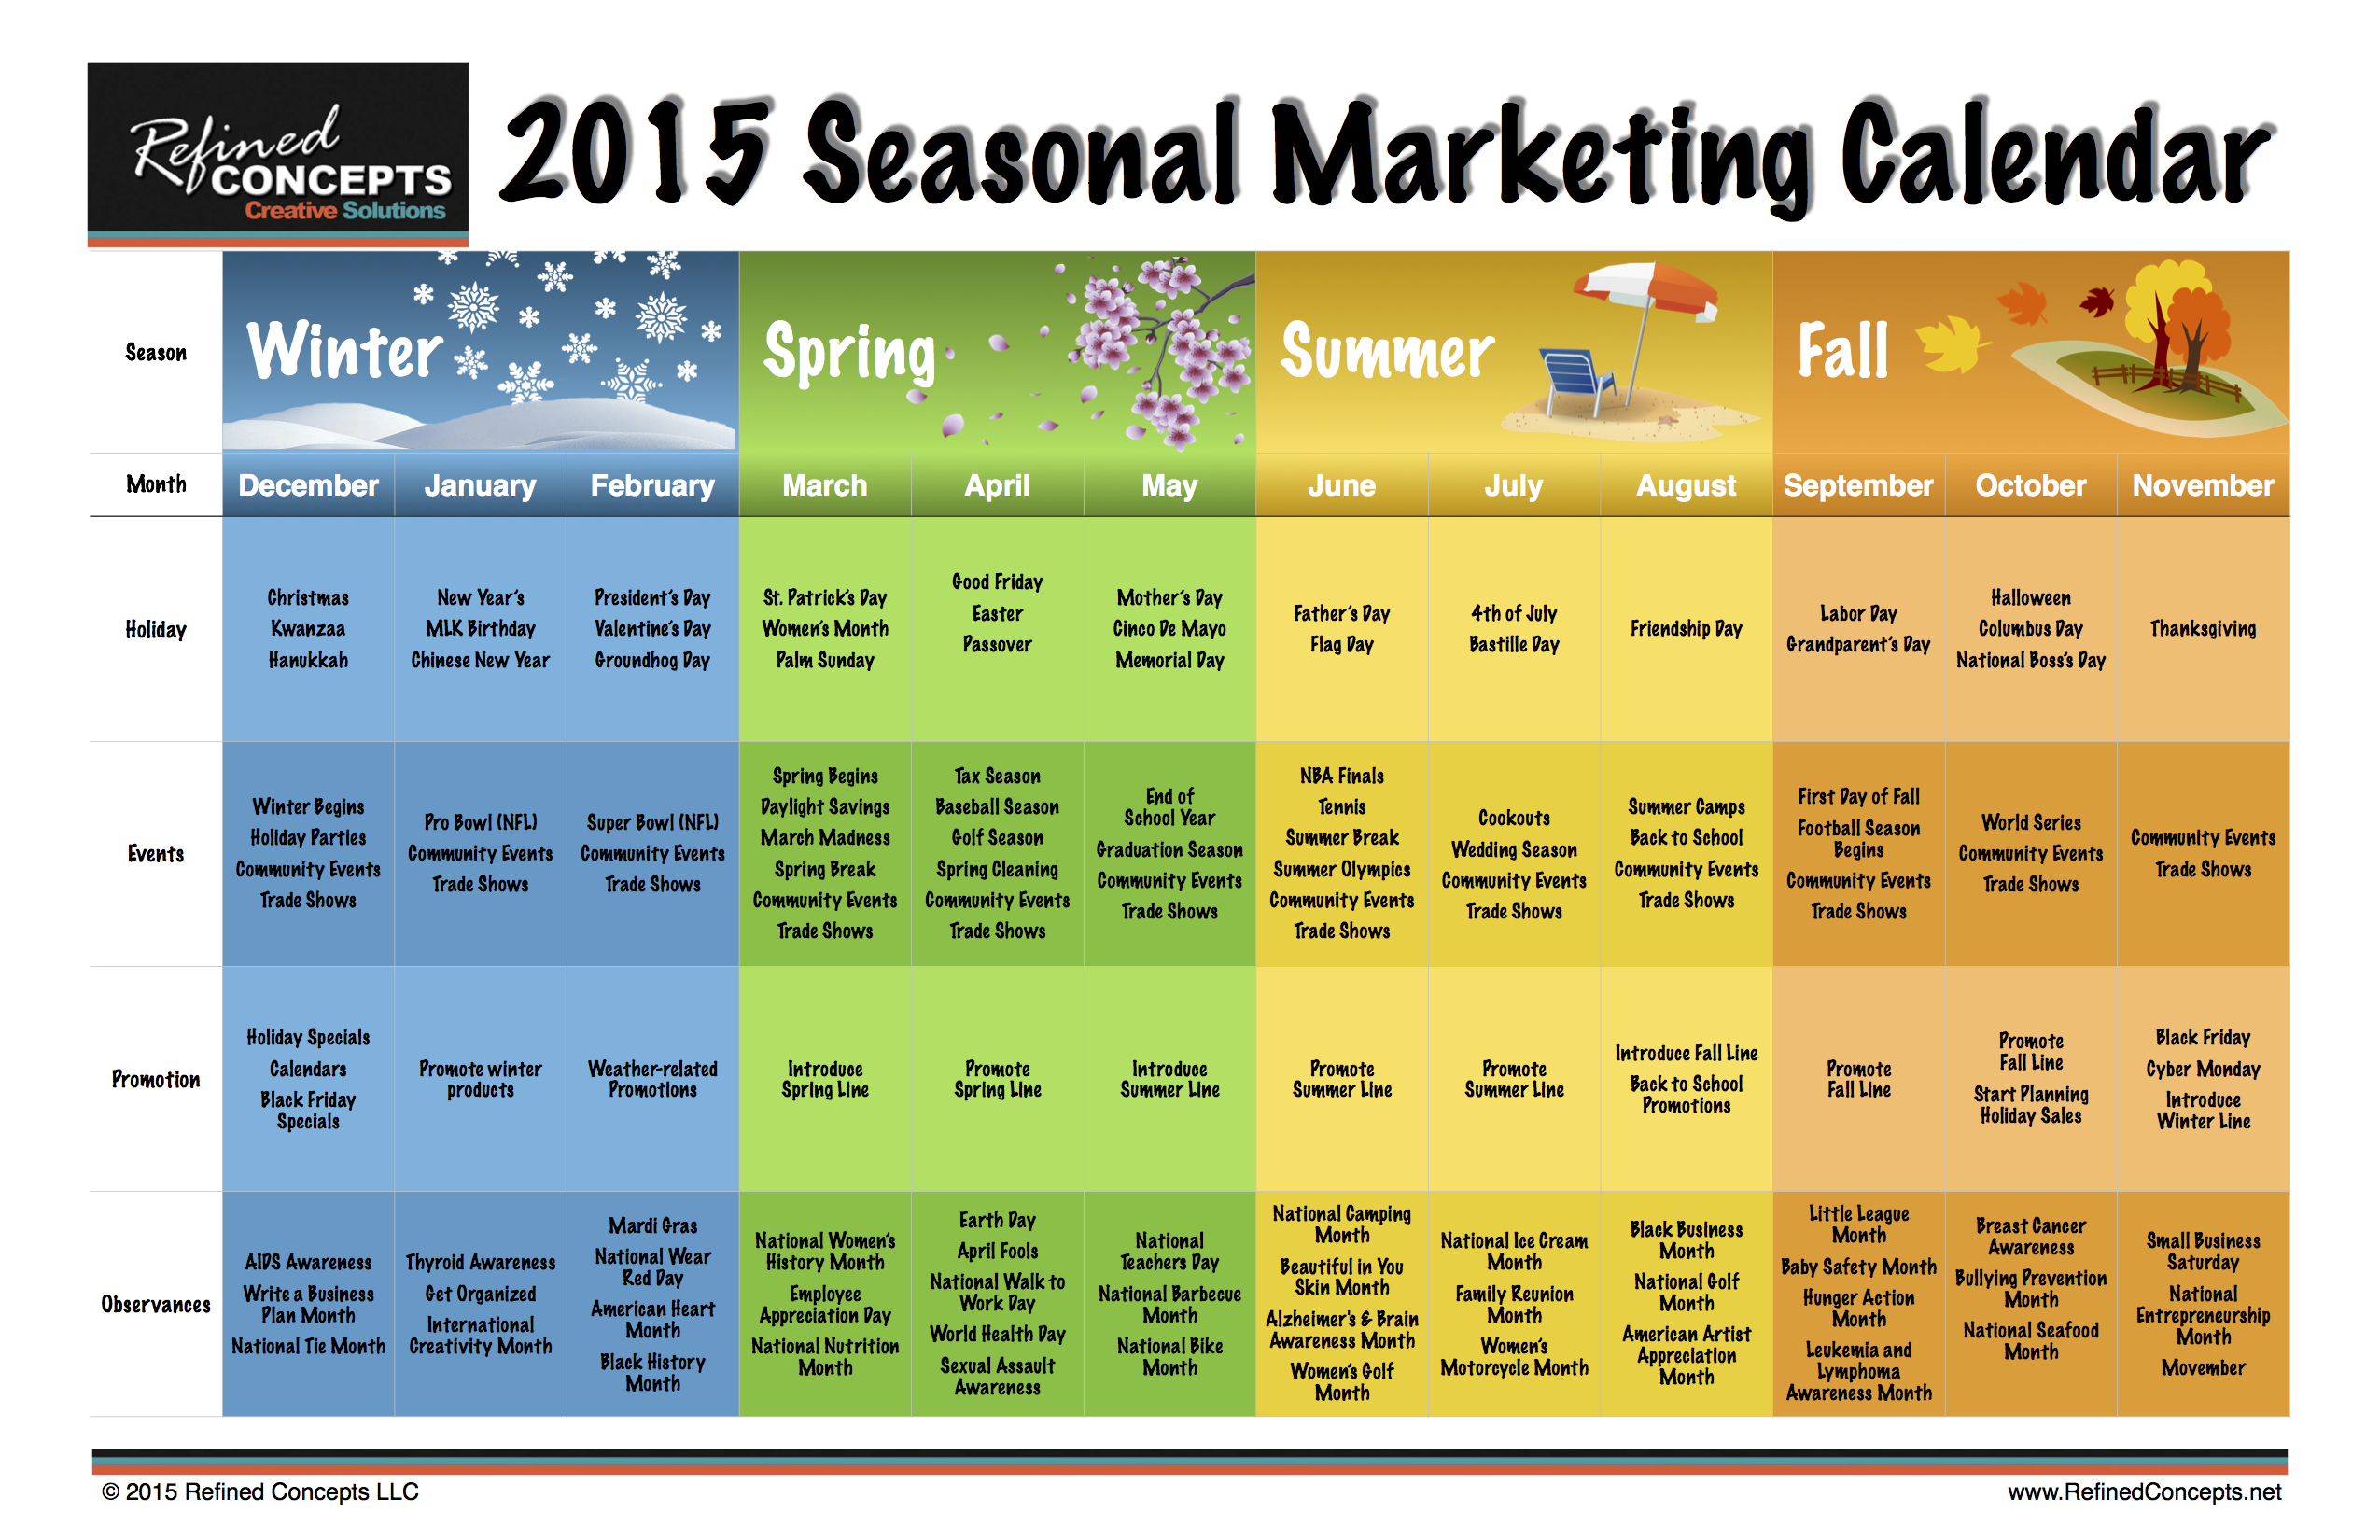 marketing campaign calendar template - should you use seasonal invoice template designs due